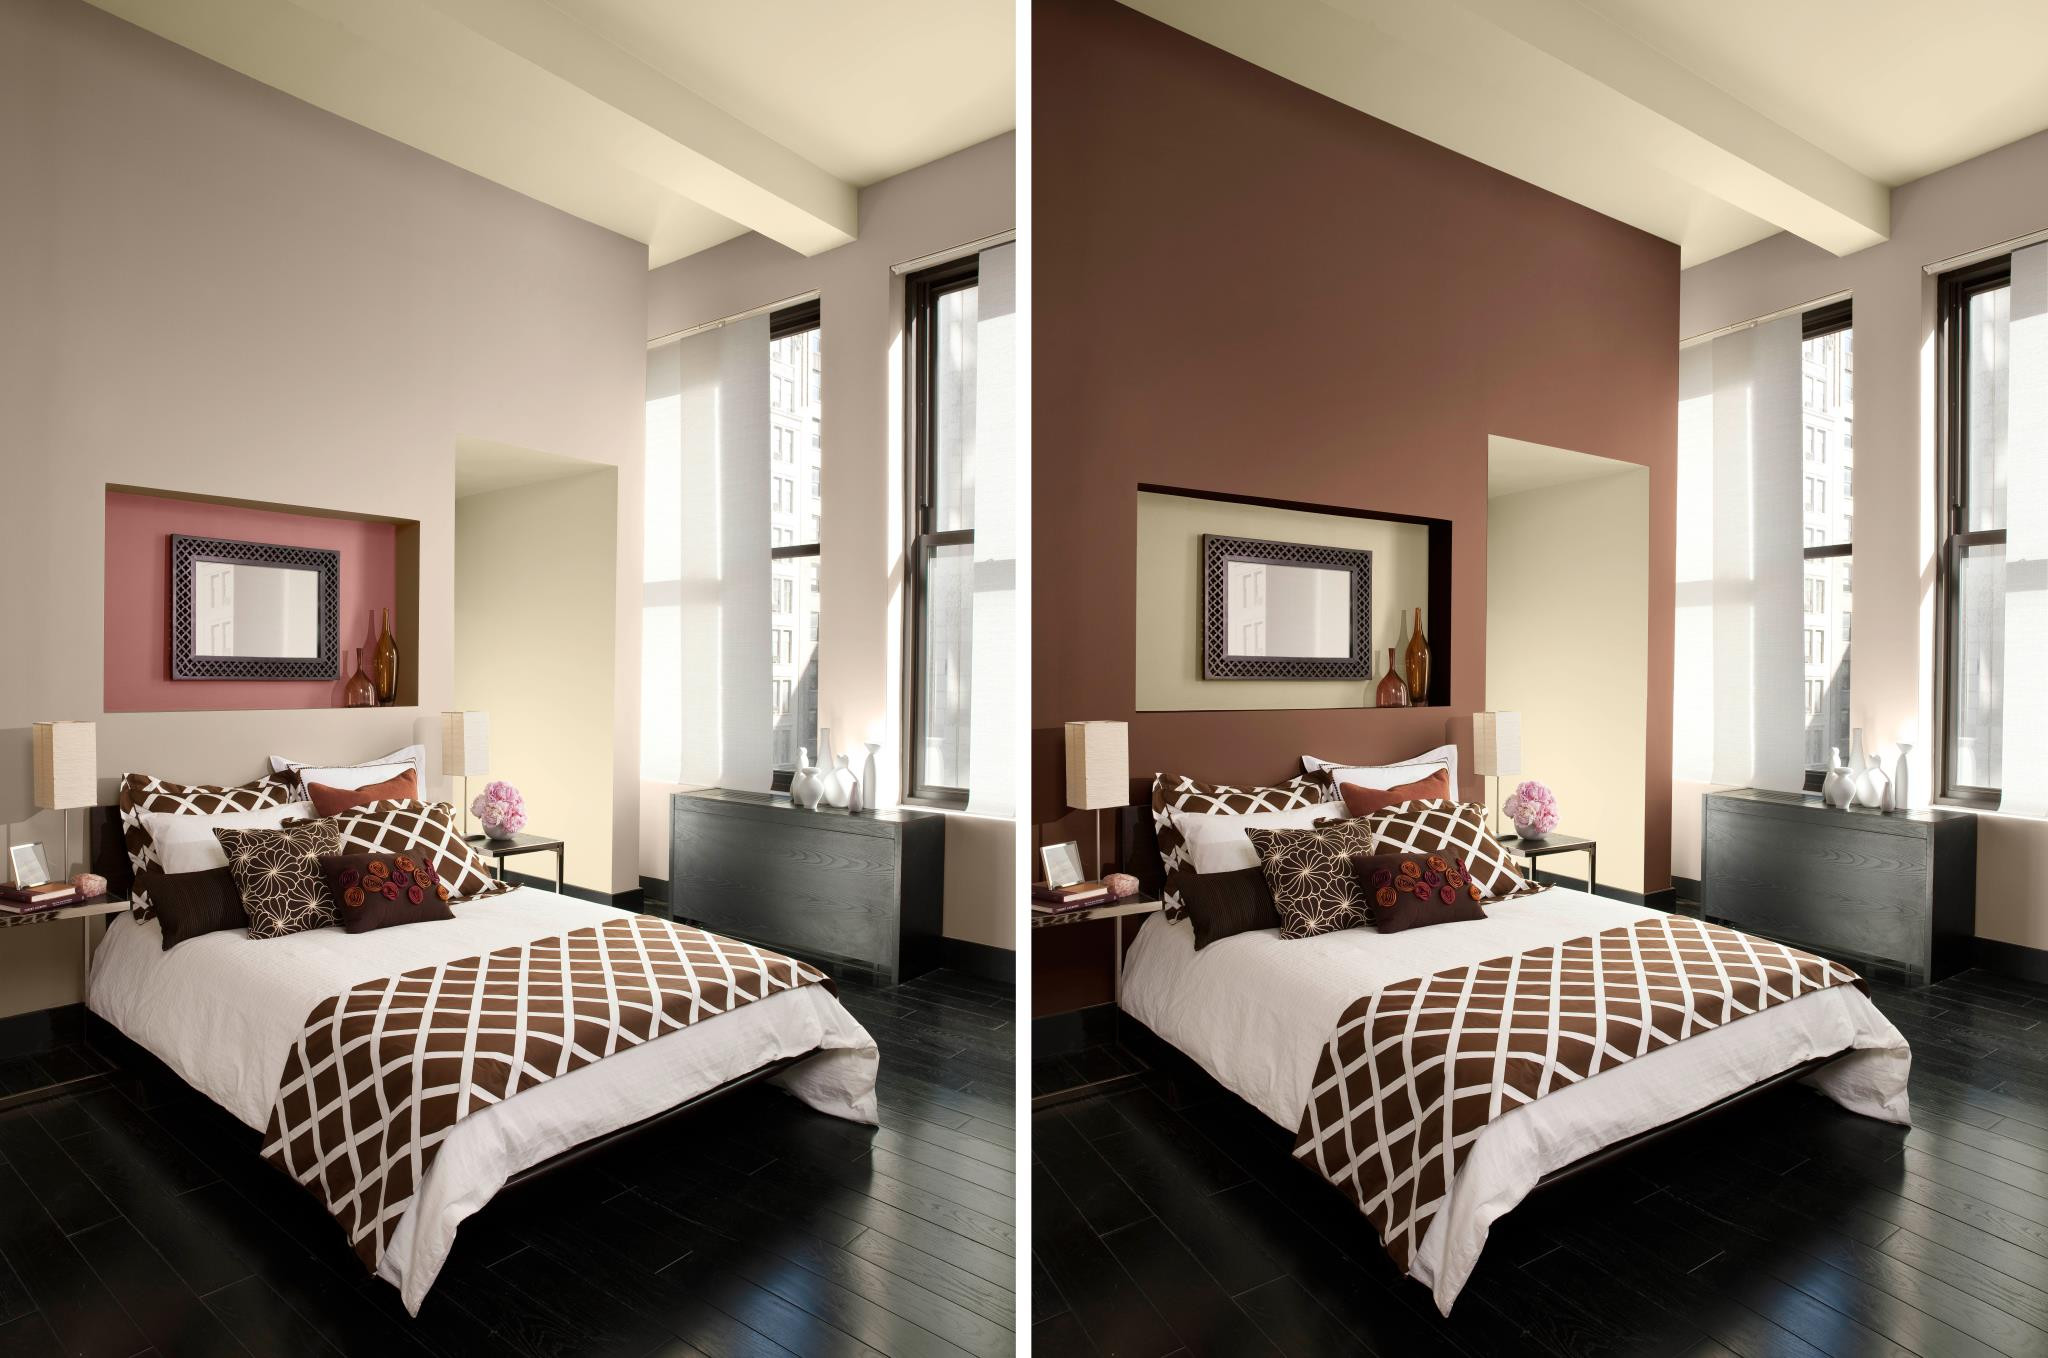 Best ideas about Painted Accent Walls . Save or Pin how to paint an accent wall Now.